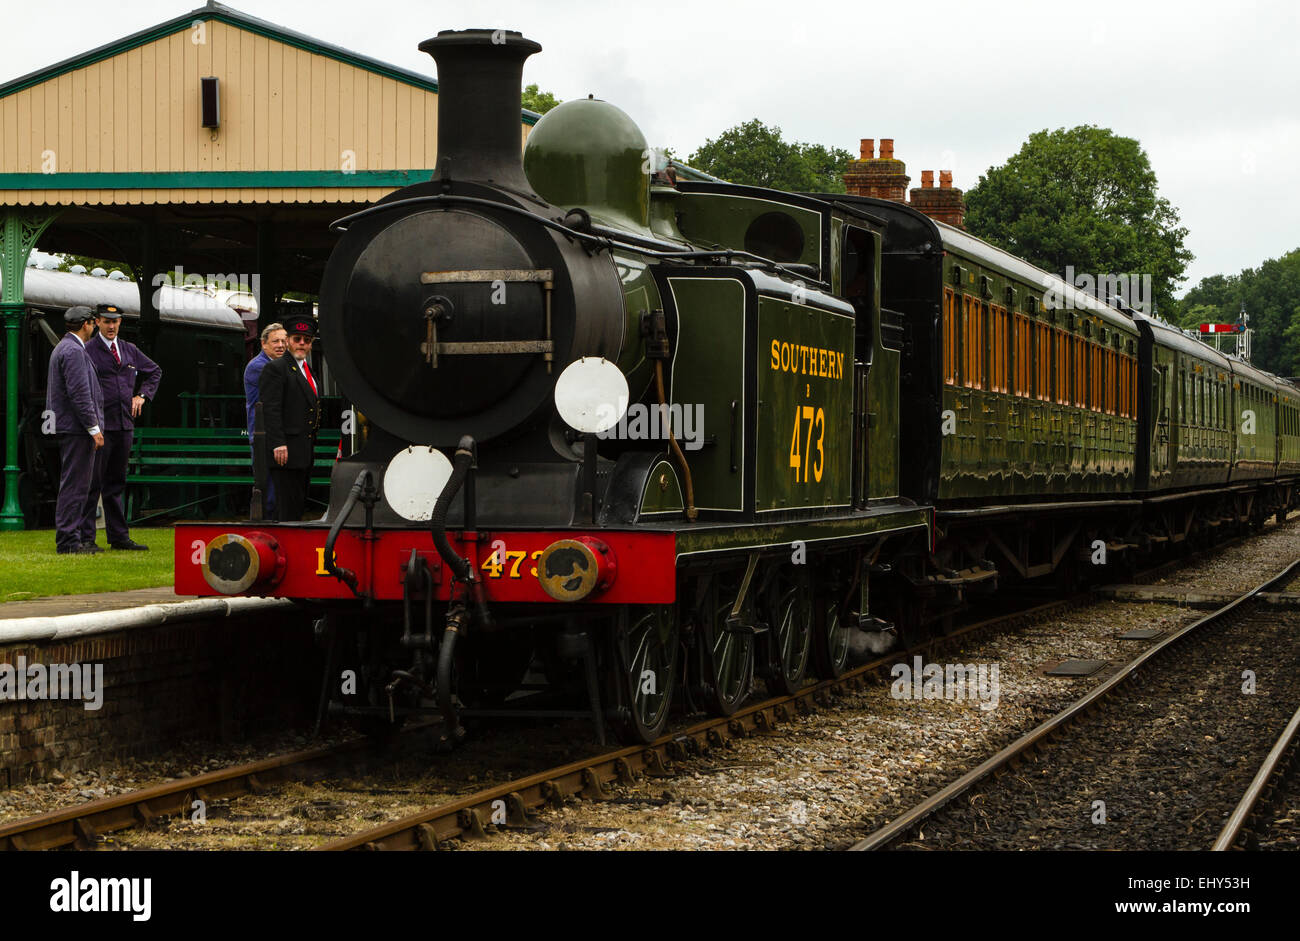 Bluebell Railway locomotive LBSCR Billinton Radial Tank, No.B473 Birch Grove is a 0-6-2T engine built in Brighton - Stock Image